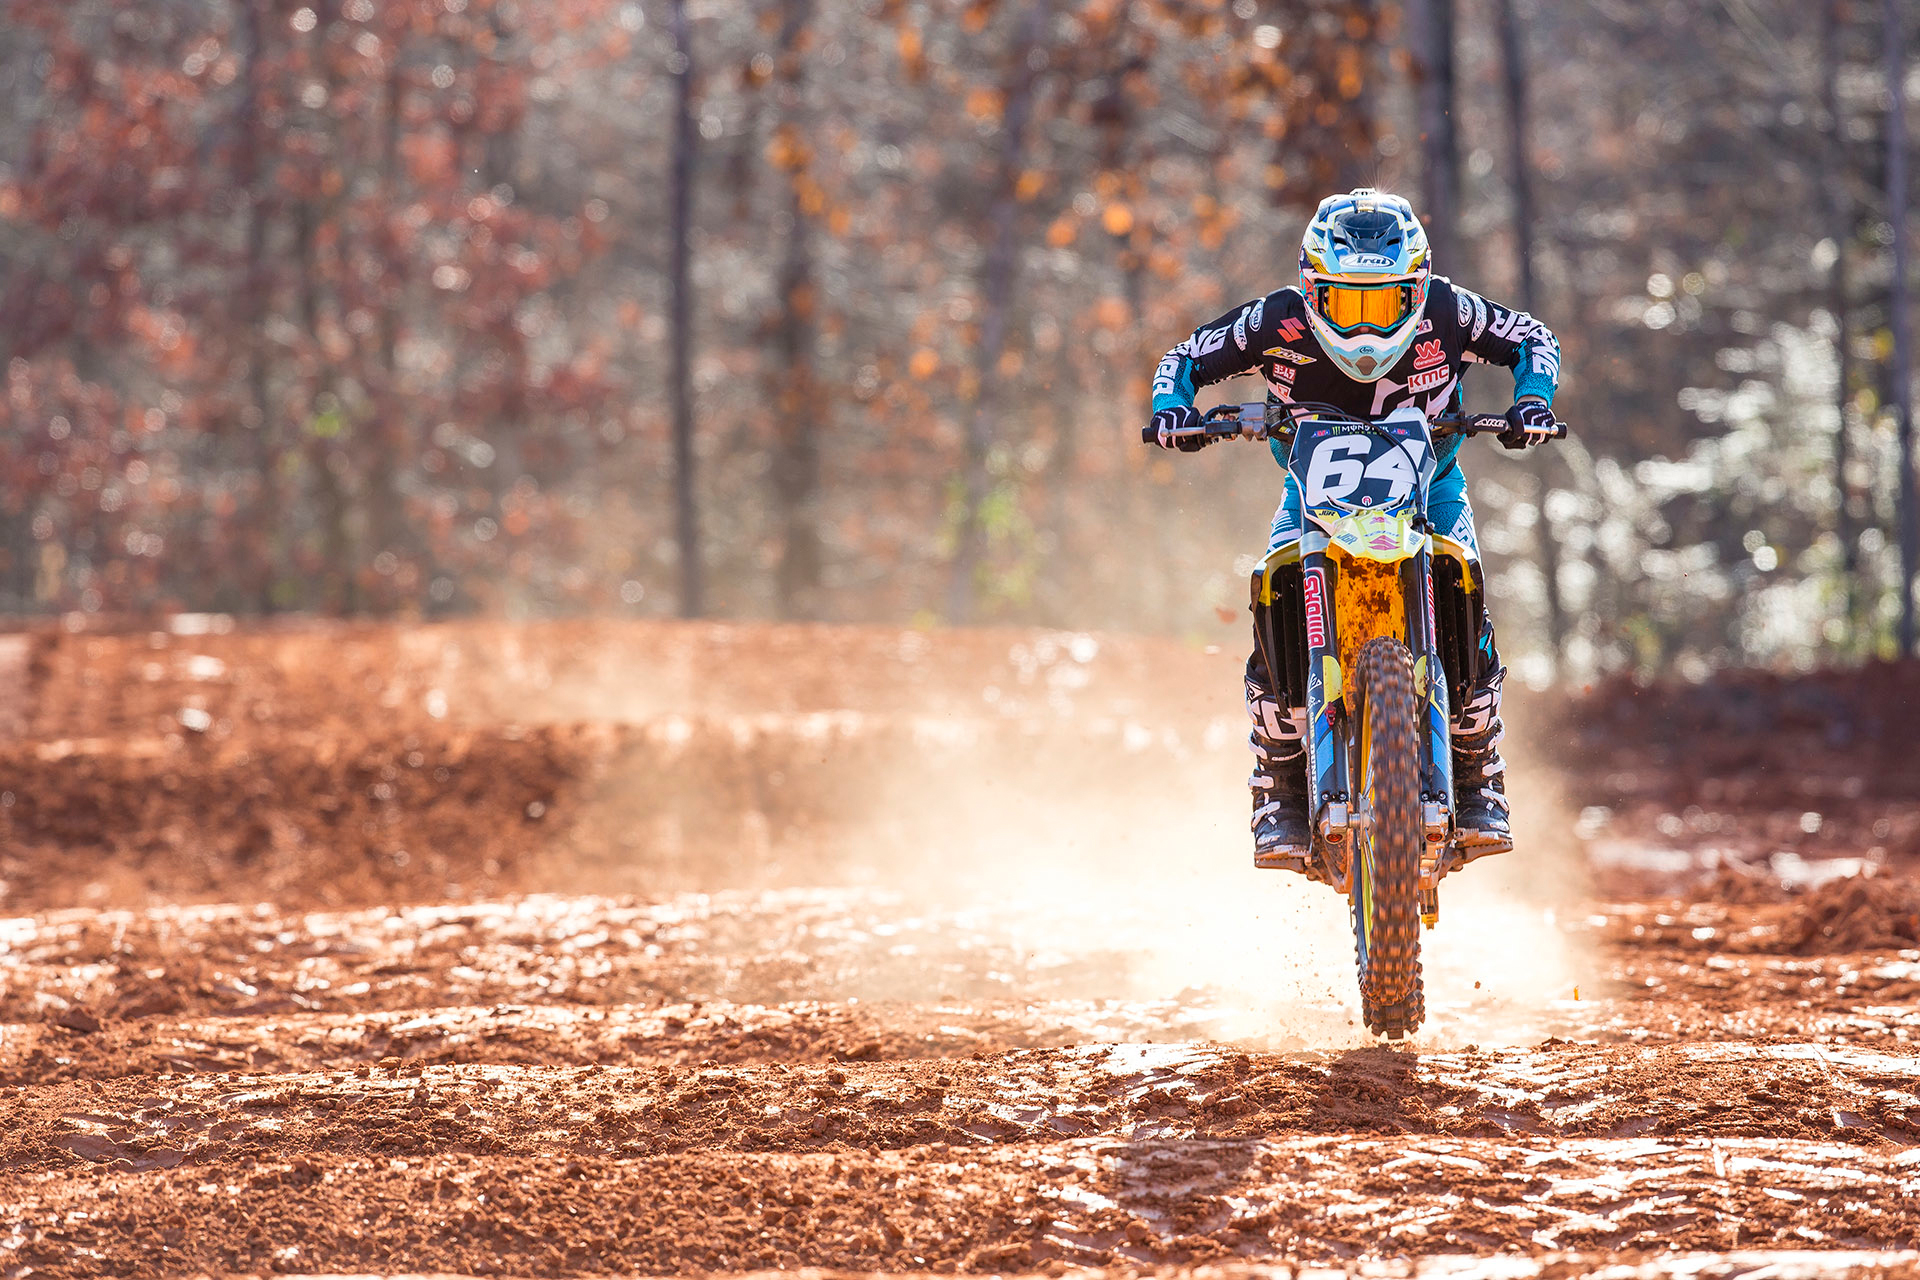 Armed with Suzuki's new RM-Z250 Jimmy Decotis is back with the JGRMX